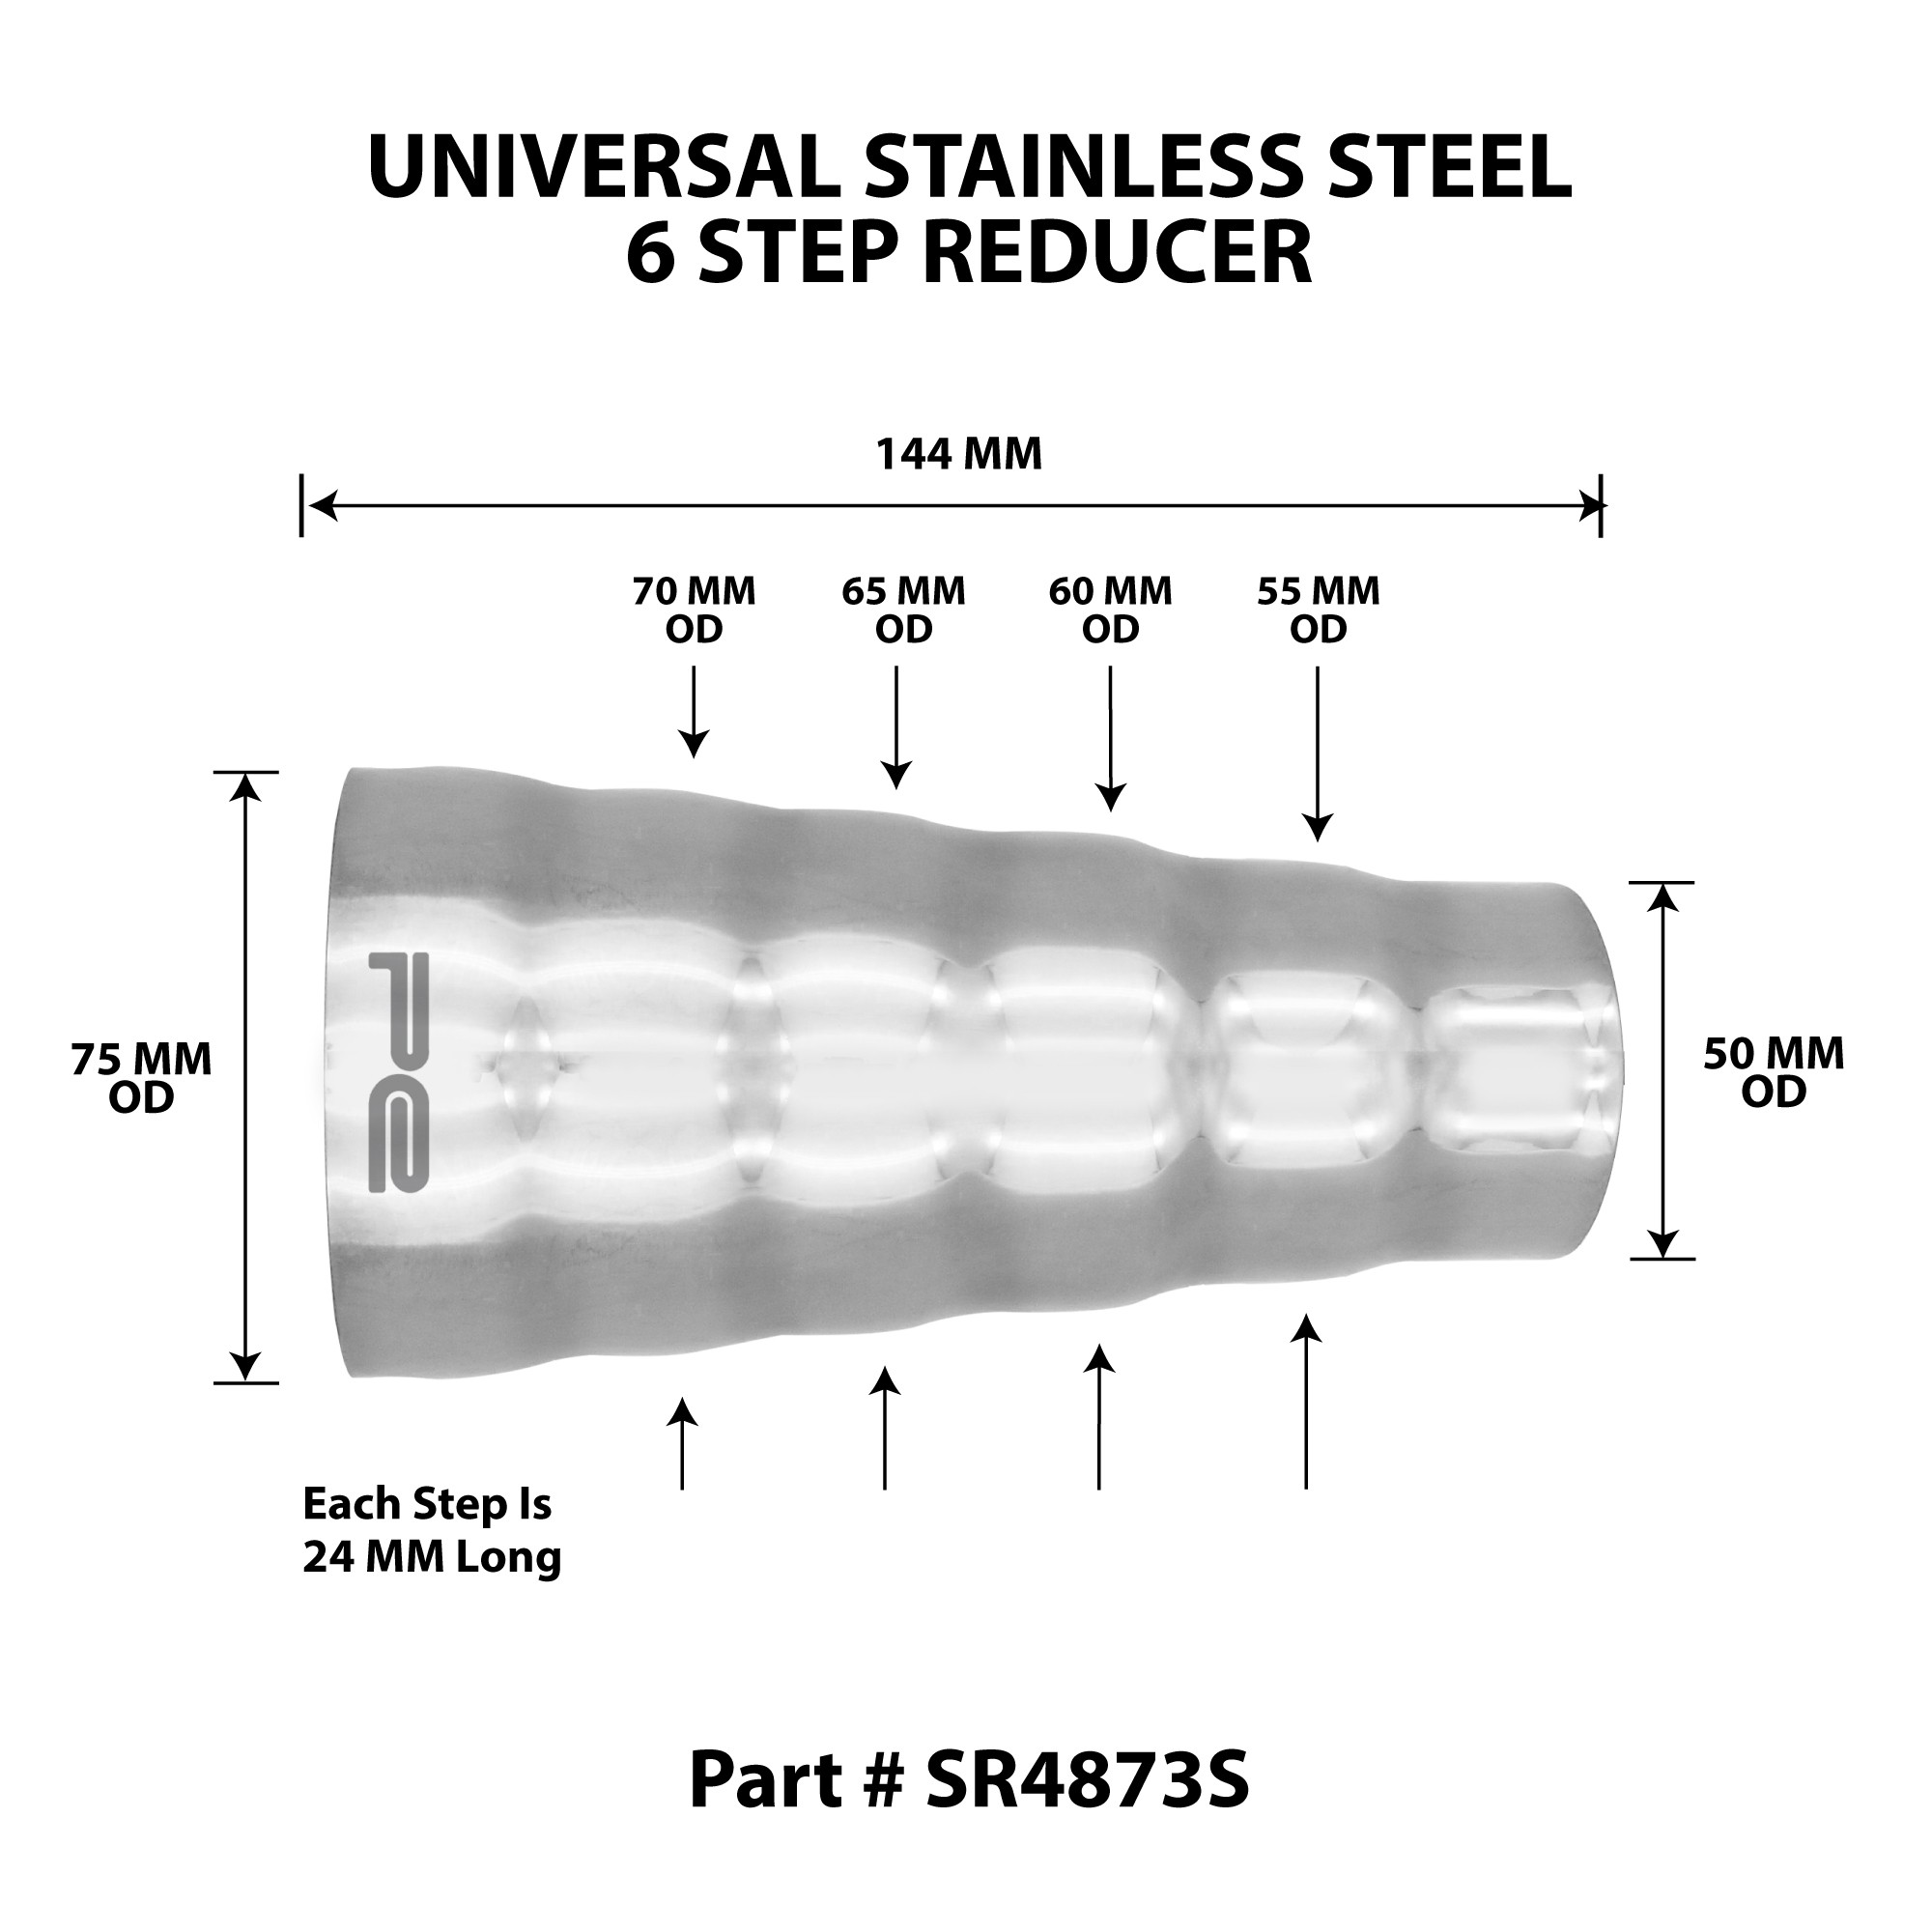 Car Exhaust System Diagram Universal 304 Stainless Steel Exhaust 6 Step Reducer Adapter Of Car Exhaust System Diagram